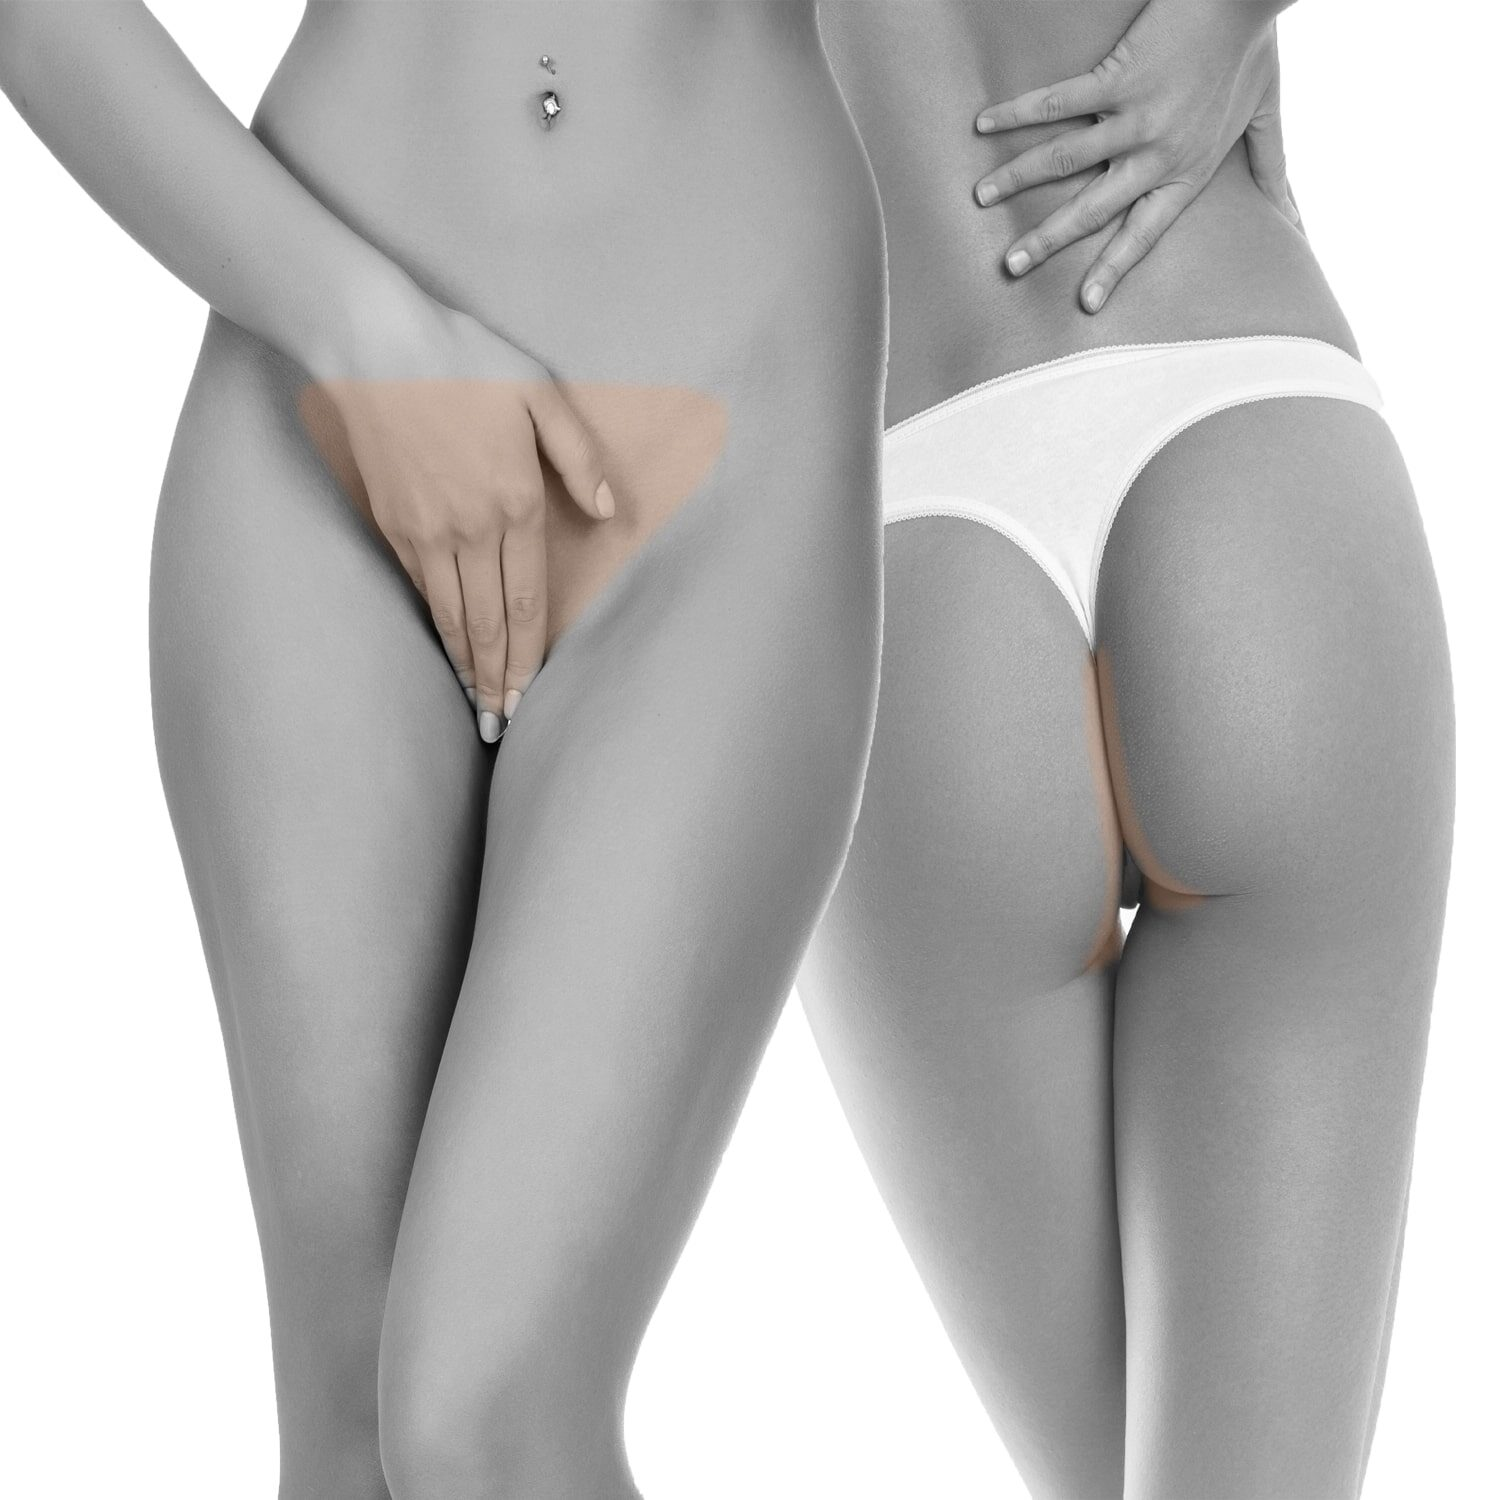 Full Brazilian Laser Hair Removal For Women in NYC